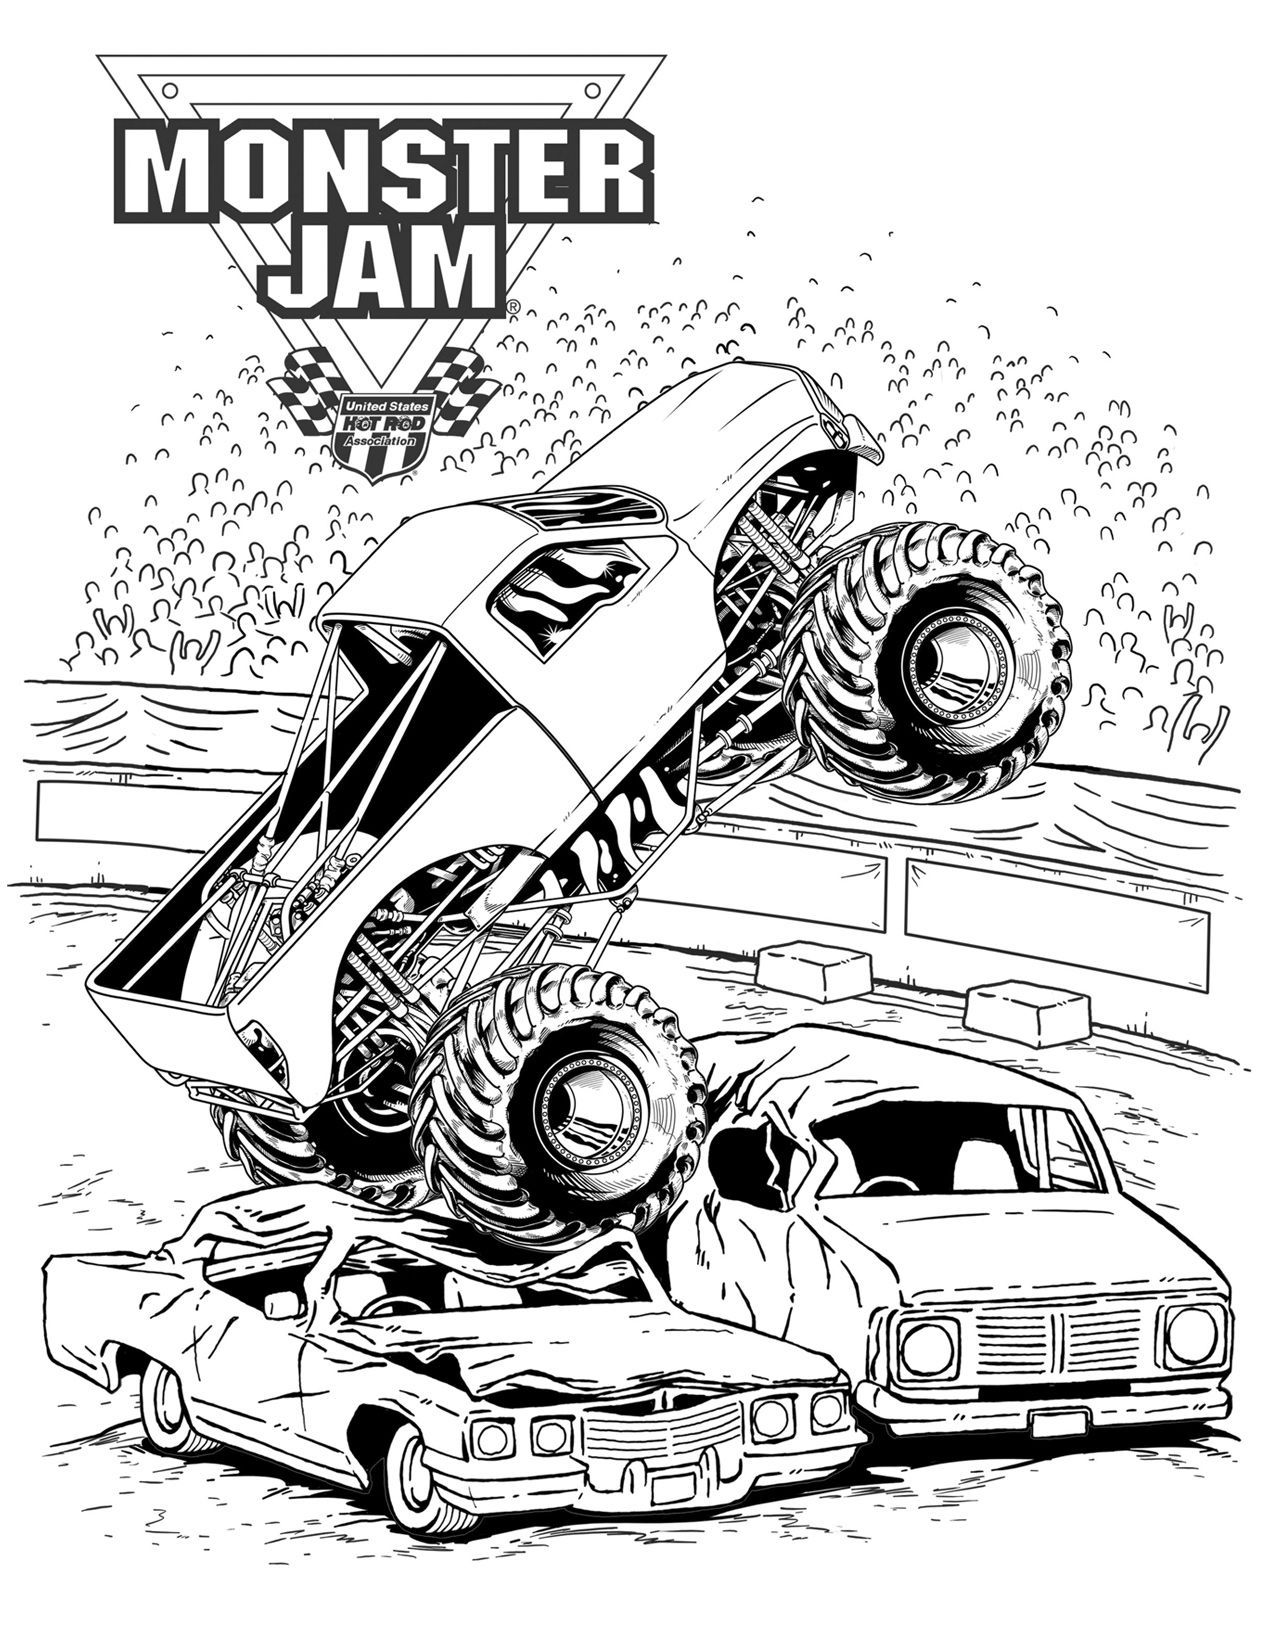 Have You Purchased Your Tickets For Monster Jam Yet